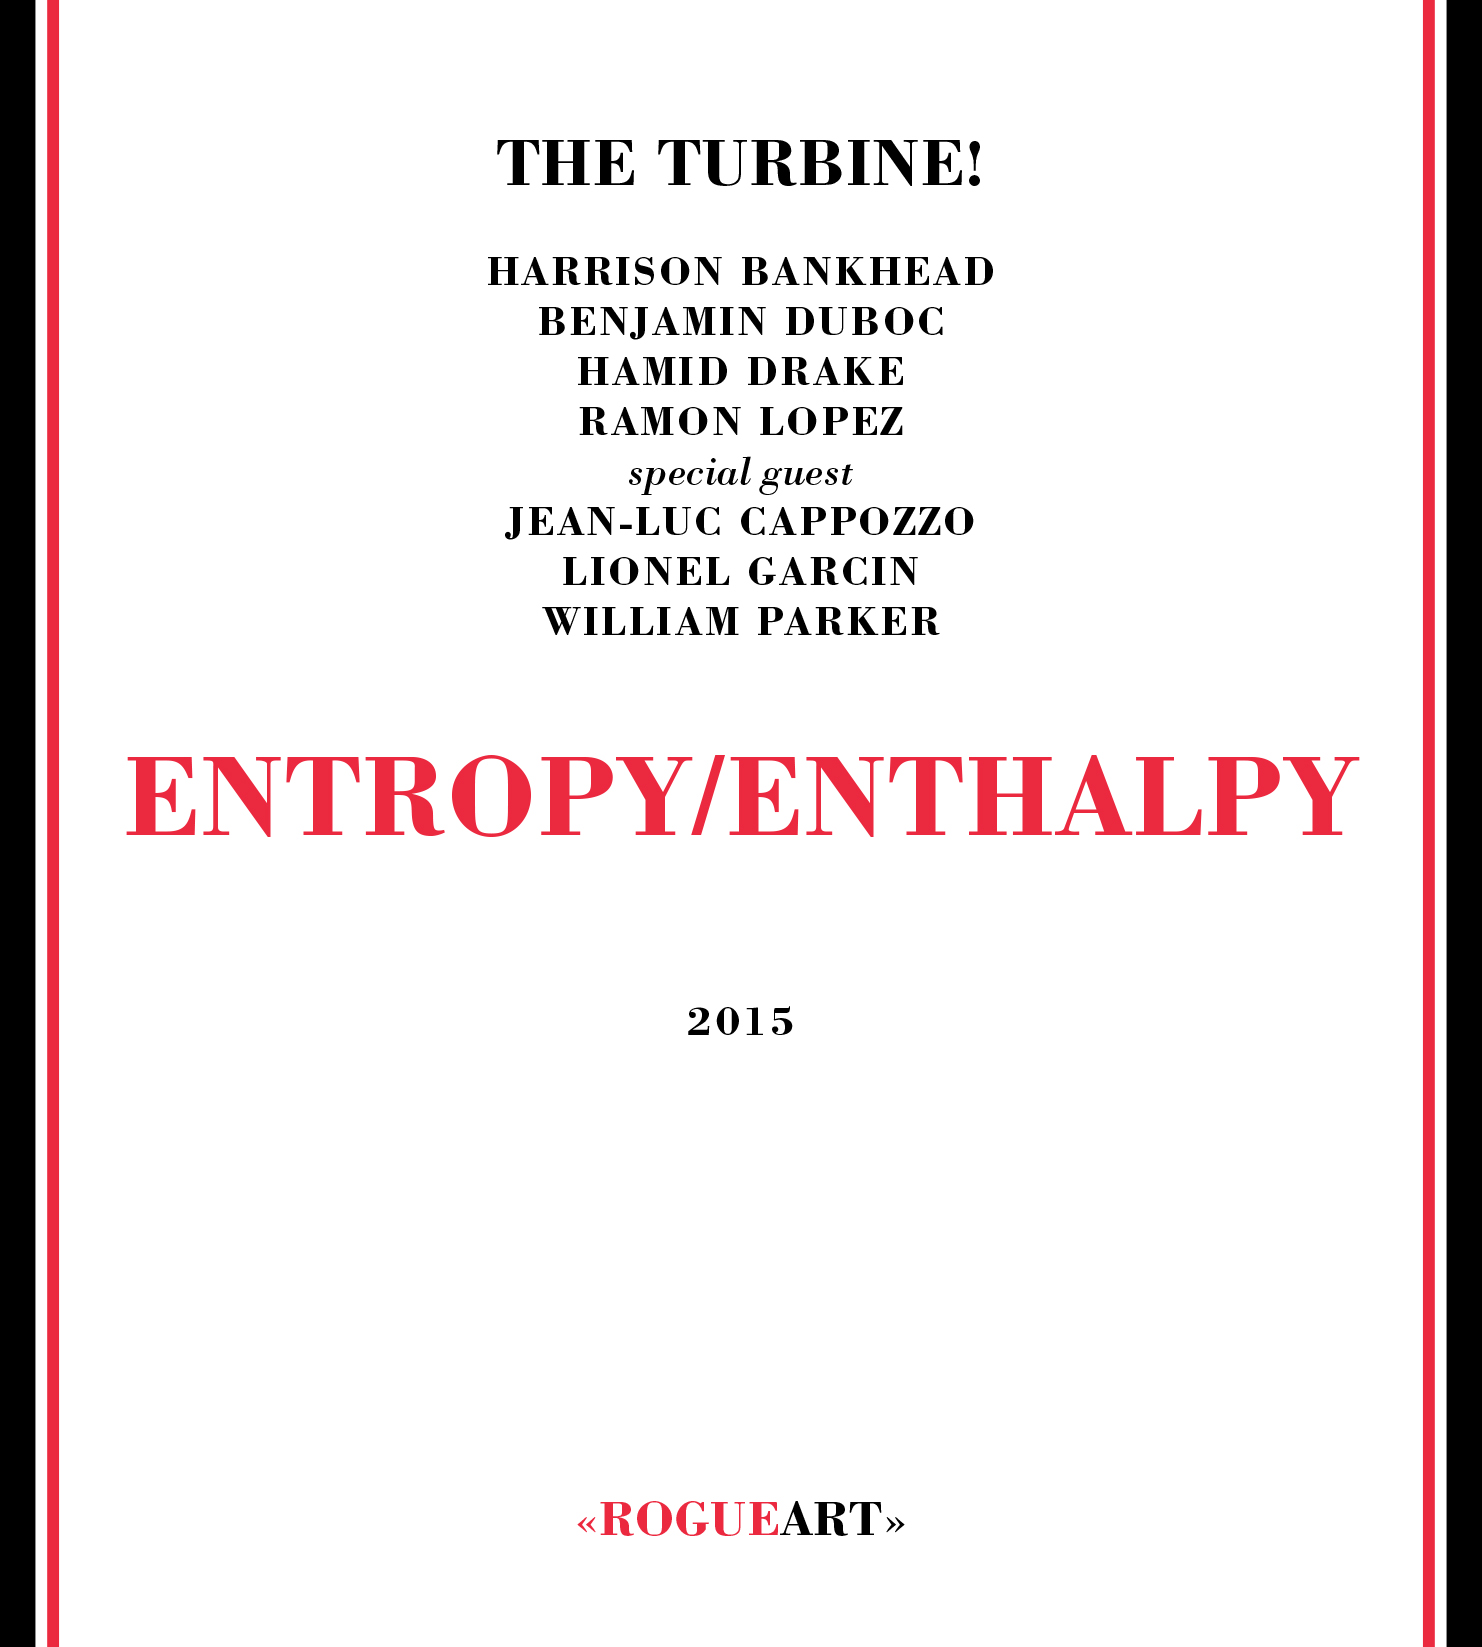 Front cover of the album ENTROPY/ENTHALPY